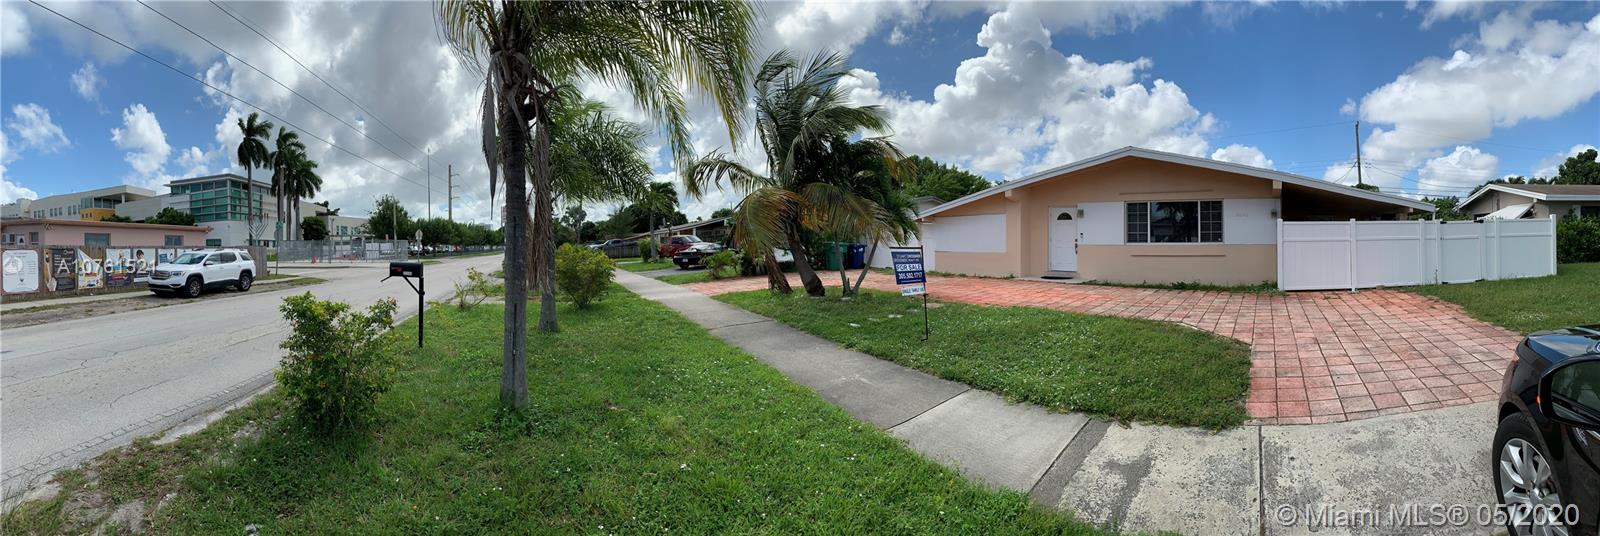 21140 NE 26th Ave  For Sale A10761521, FL